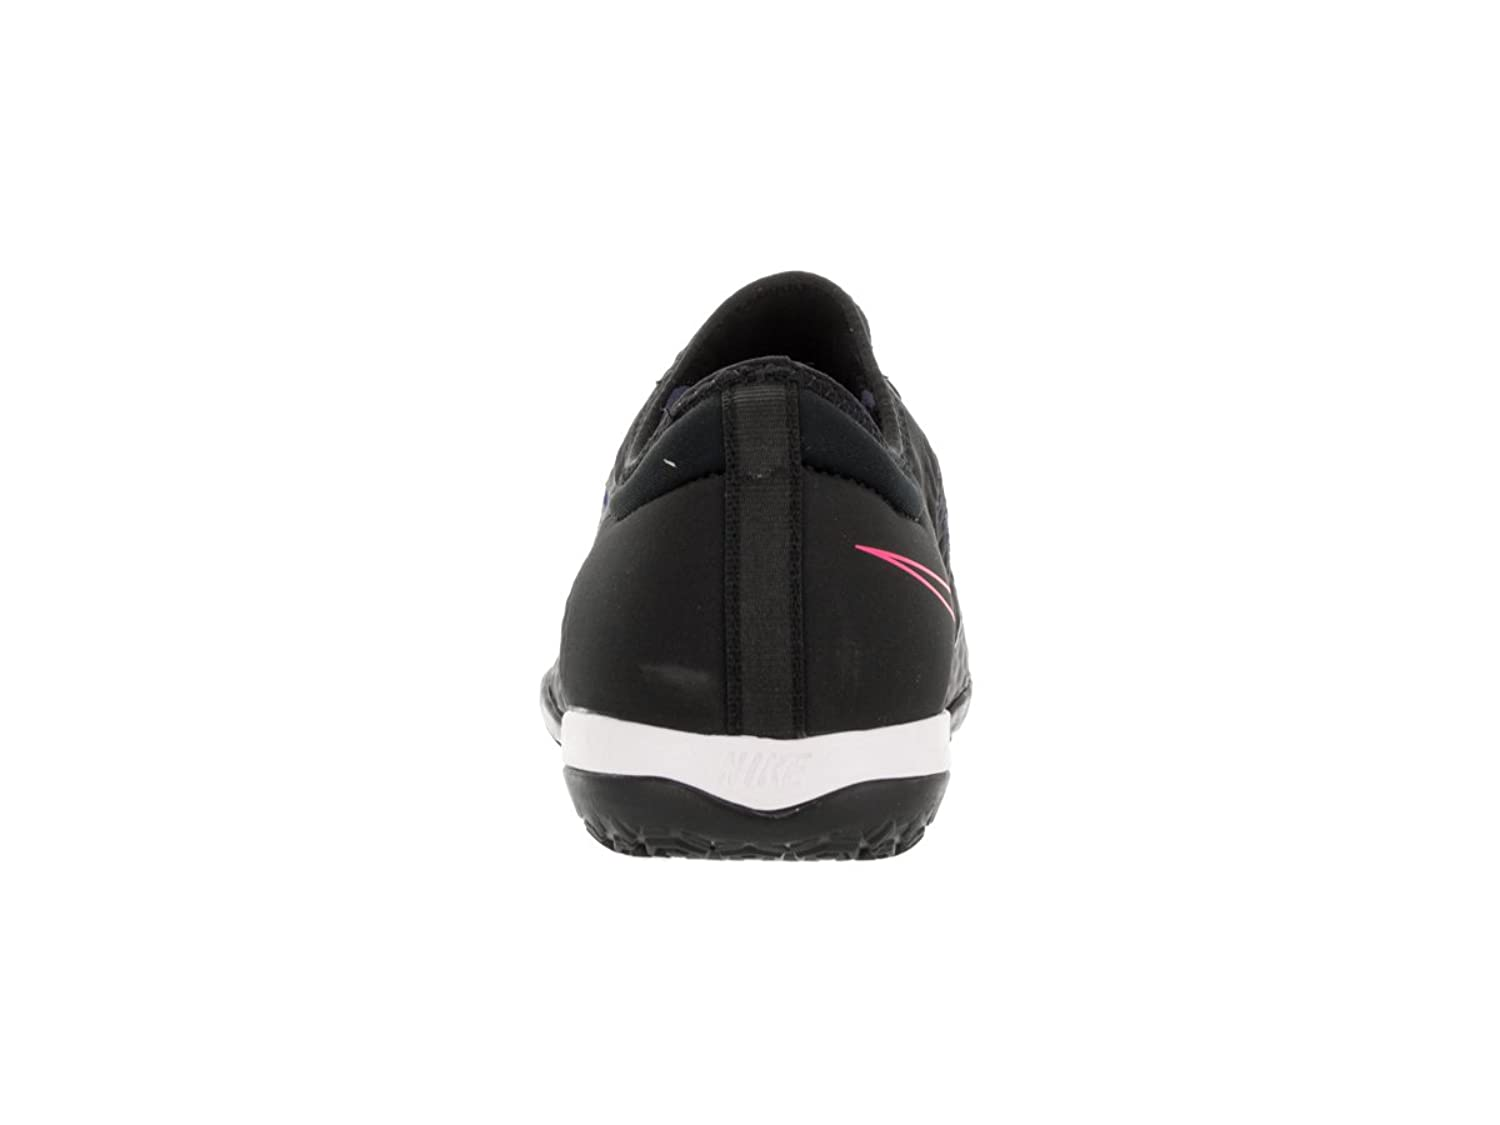 db3f33f45 ... canada nike mercurialx finale indoor ic soccer shoes 10 uk buy online  at low prices in